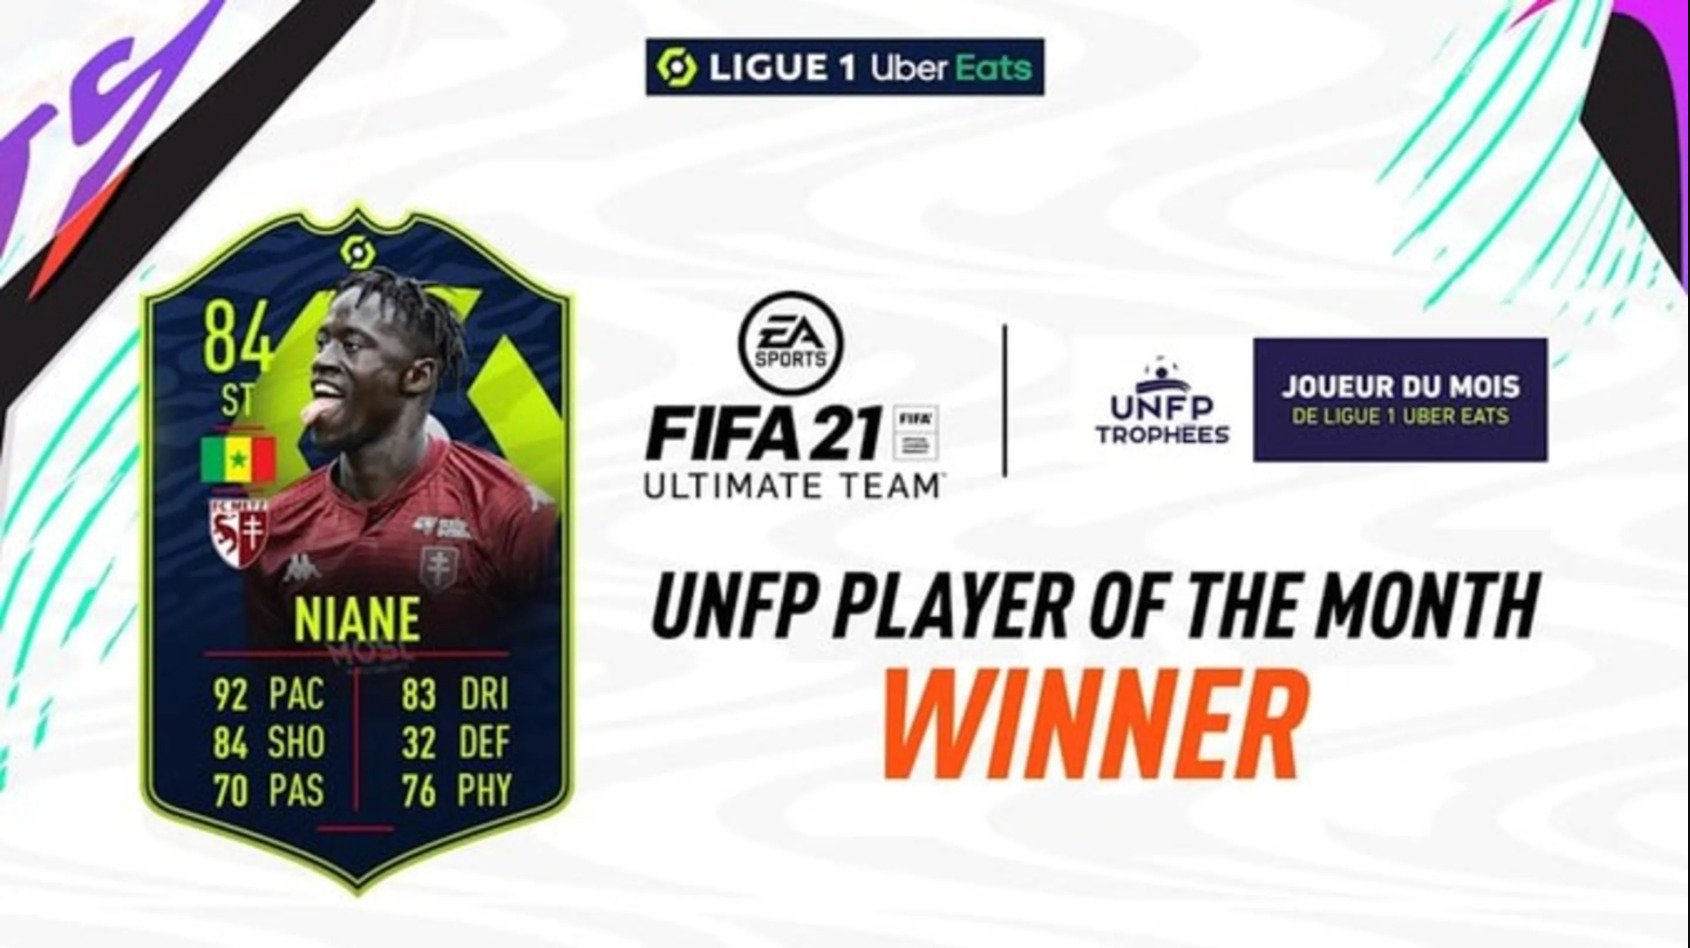 Should You Do The Ibrahima Niane Ligue 1 POTM SBC In FIFA 21? Three Weeks In And This Card Is Already Behind The Curve